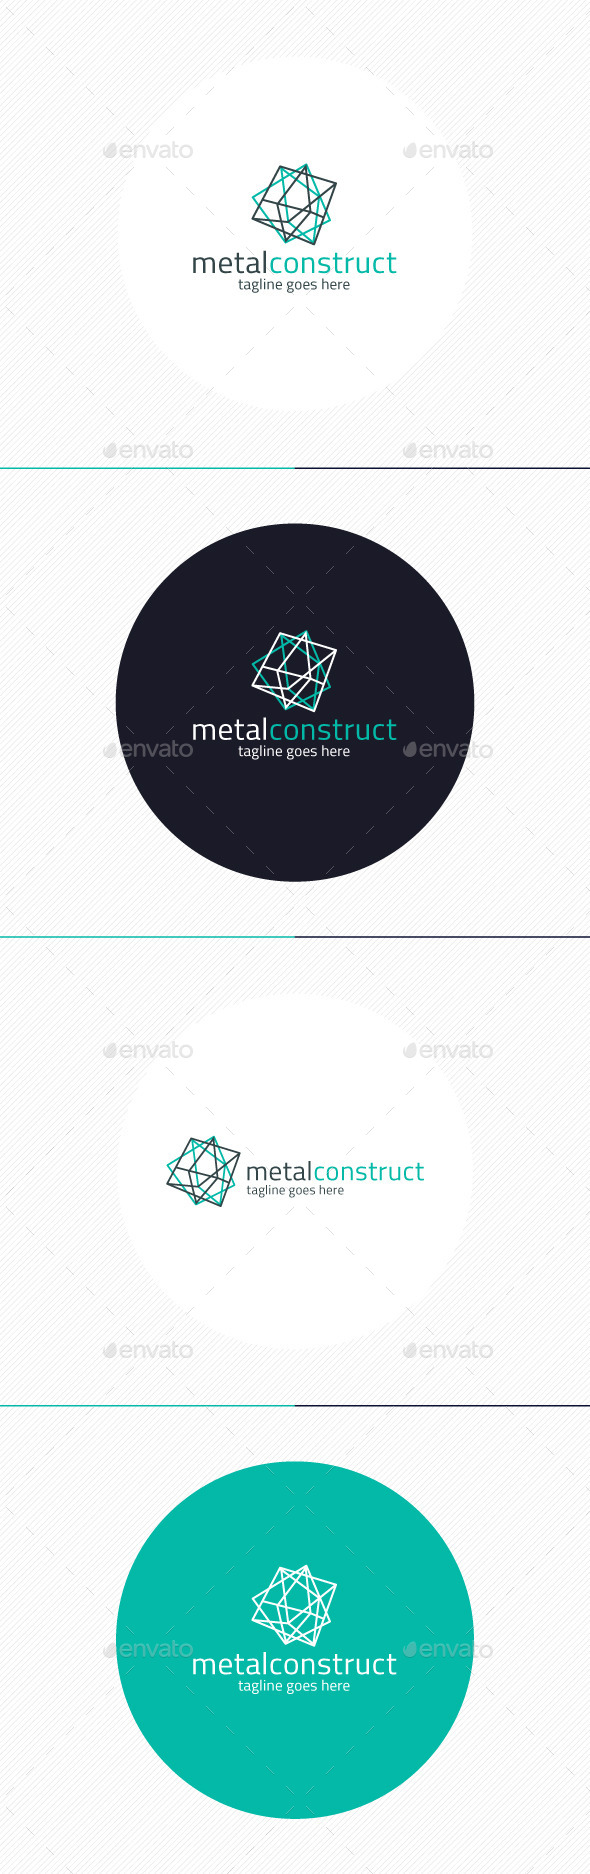 GraphicRiver Metal Construct Logo 9201460